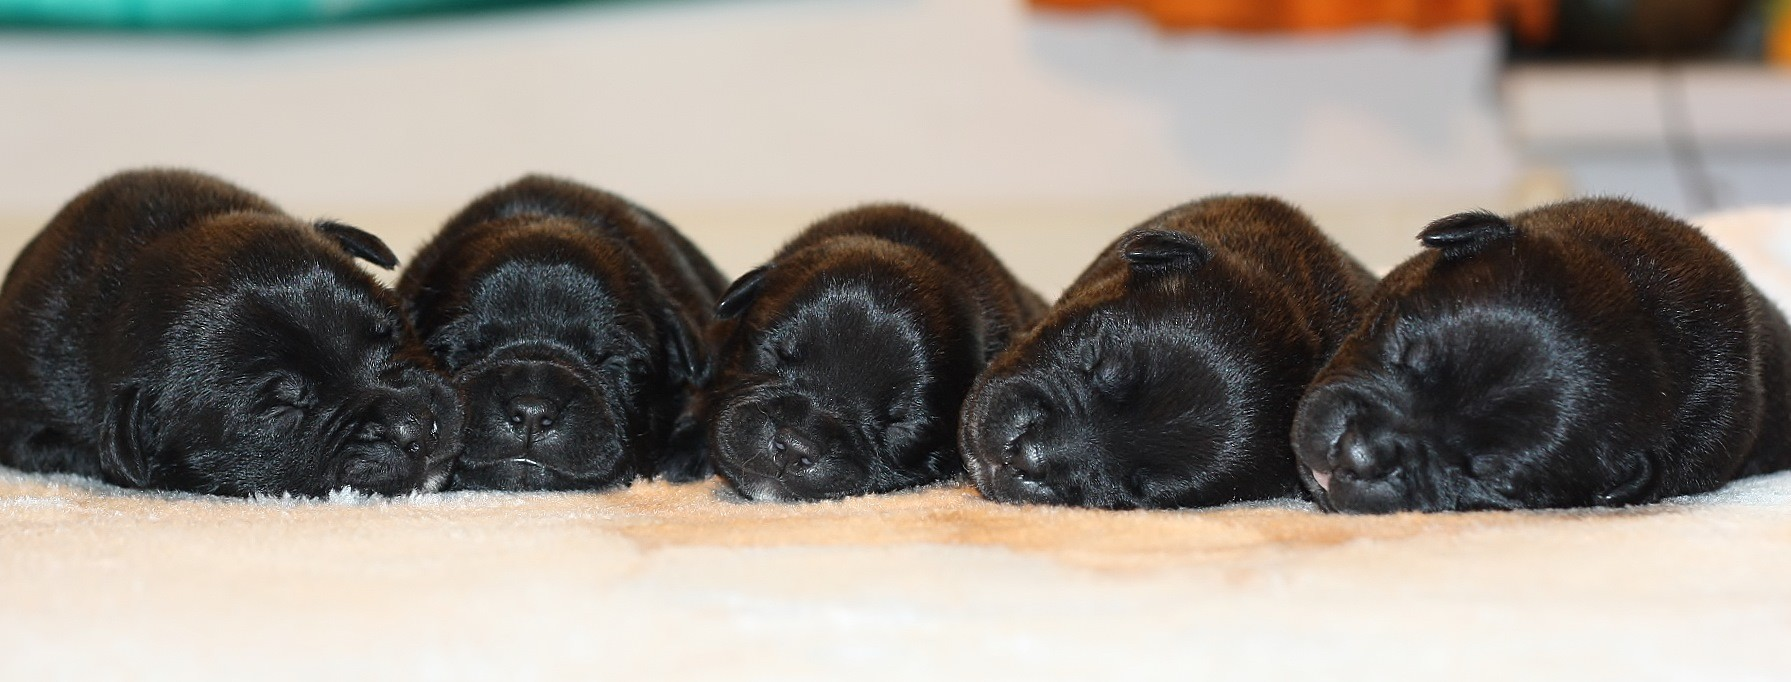 and our babies boys  8 days old